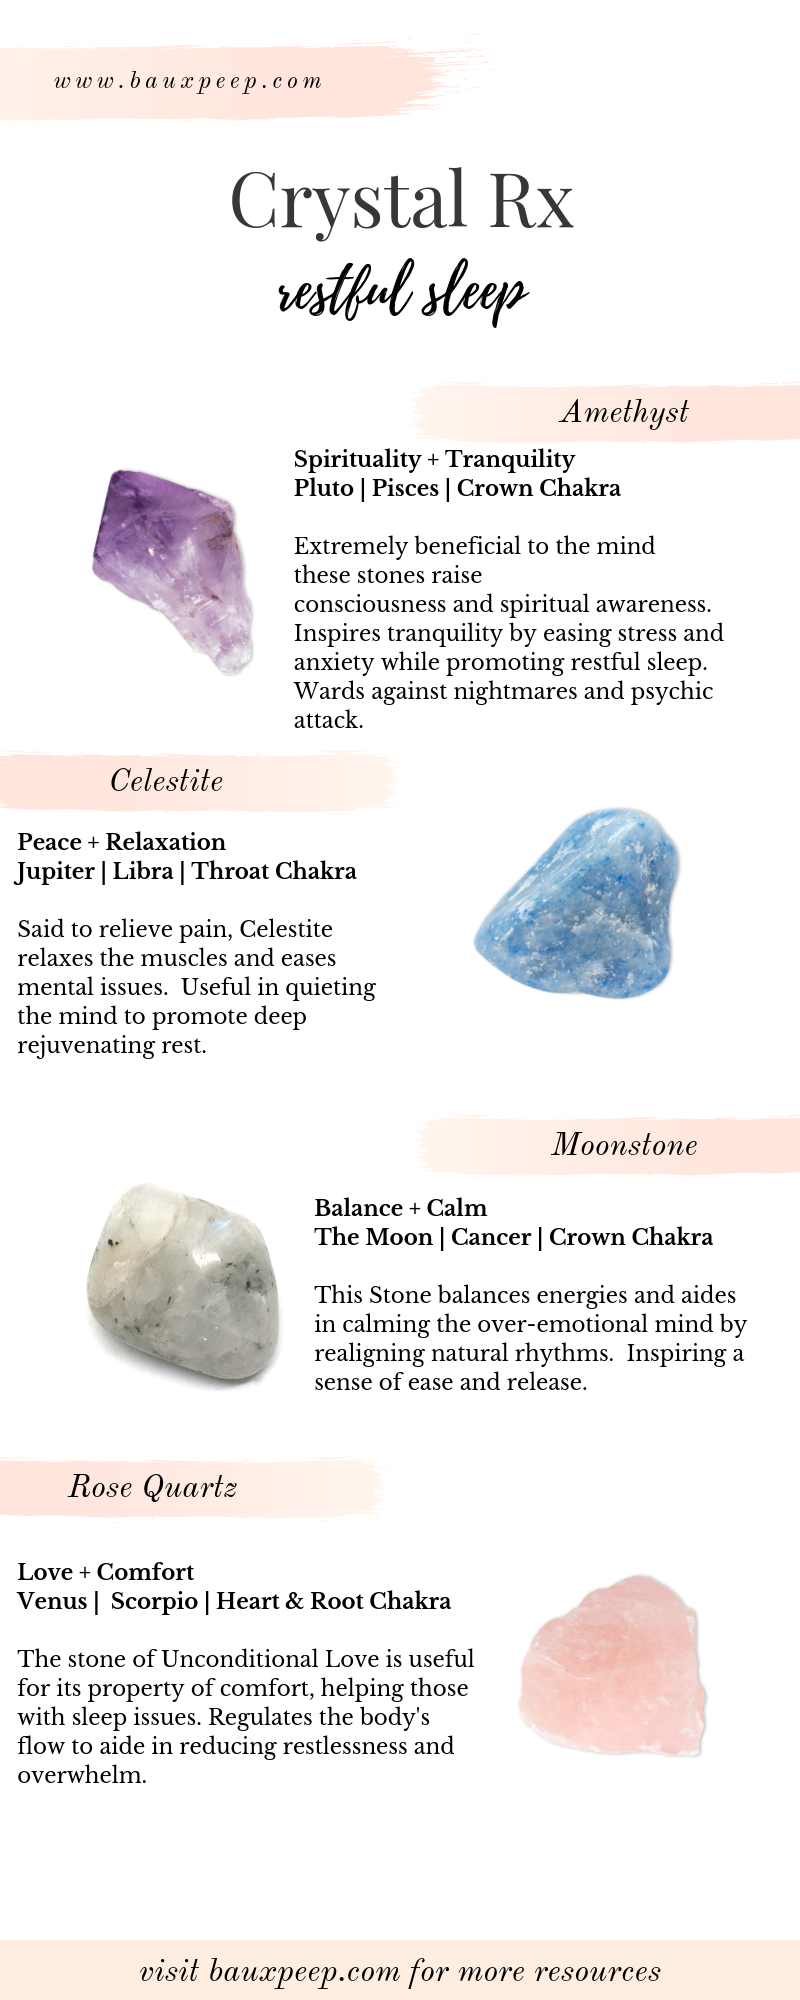 What's your Crystal Rx? Looking for the best crystals to use for sleep issues? Here a four of the BEST crystals for promoting restful sleep. Check out the blog for more FREE crystal healing resources ! #crystals #crystalmeanings #crystalrx #crystalsforsleep #crystalhealing #howtousehealingcrystals #crystalhealing